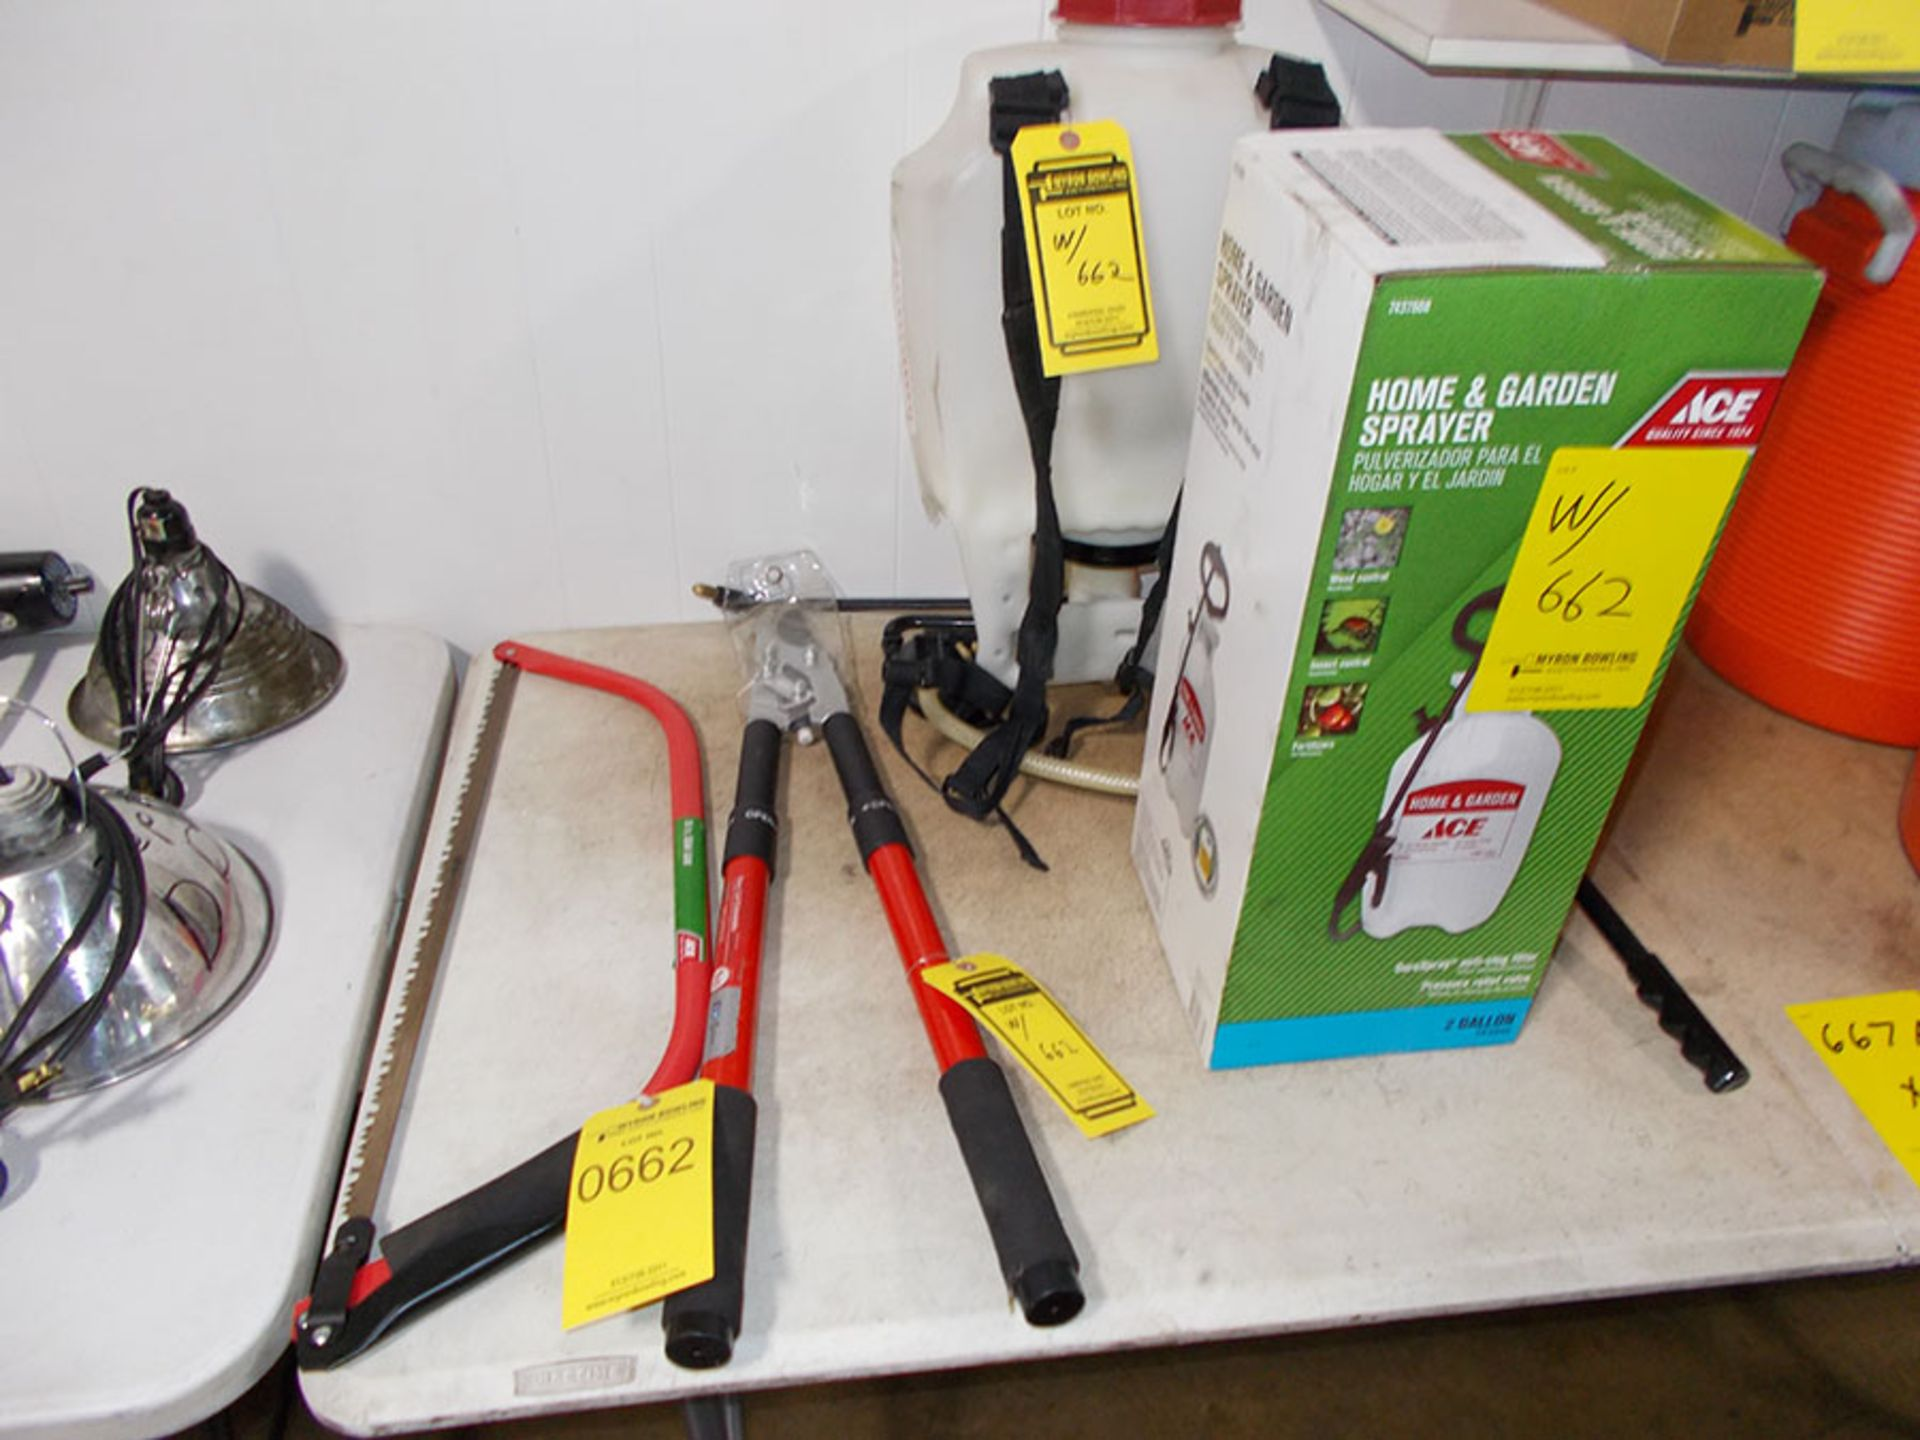 Lot 662 - 24'' BOW SAW, EXTENDABLE HANDLE TRIMMER, AND (2) SPRAYERS